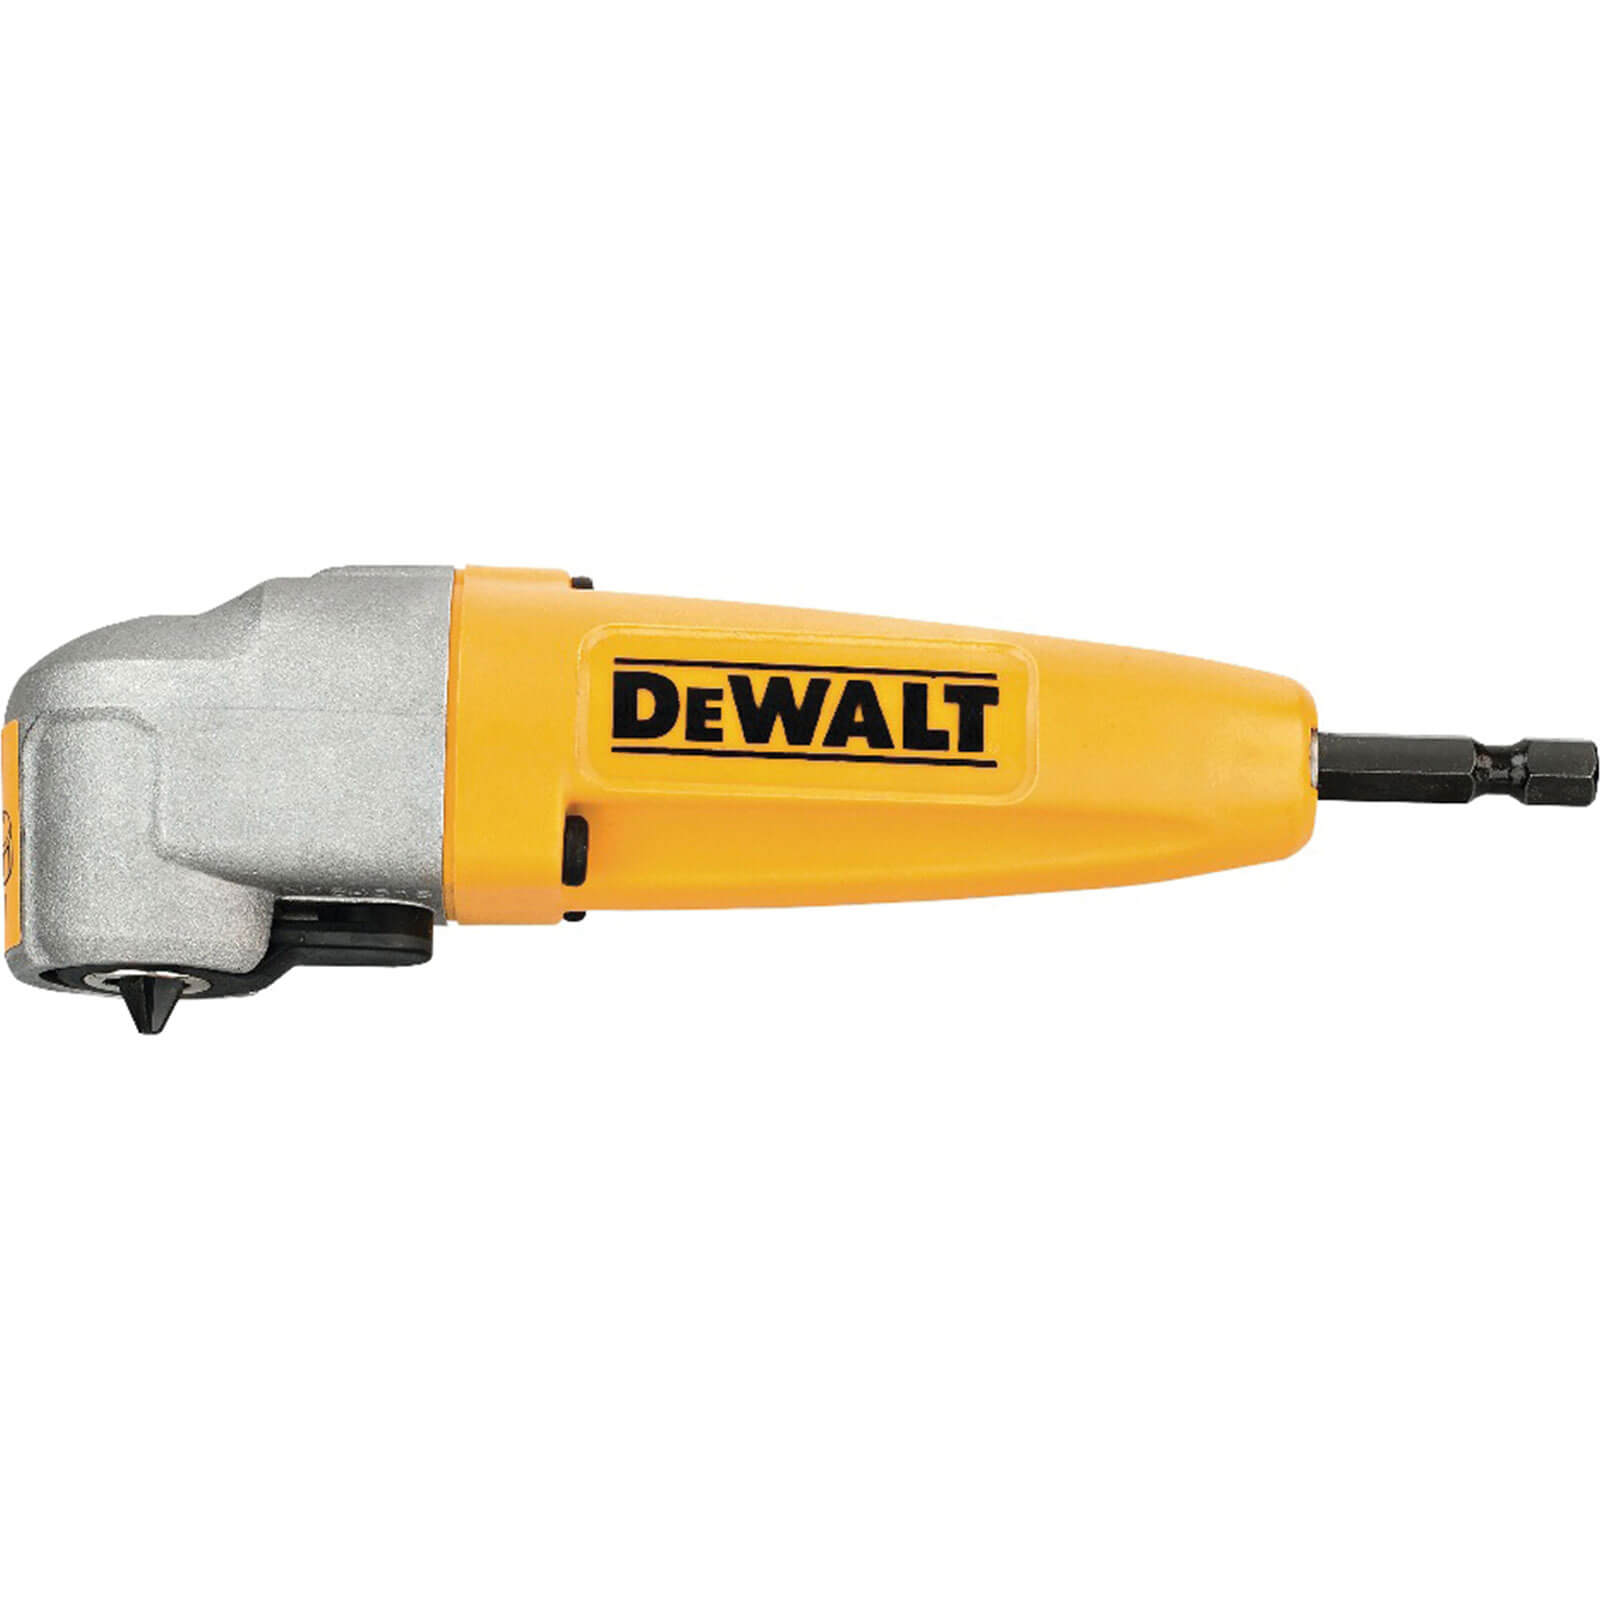 DeWalt DT71517T Right Angle Drill Attachment